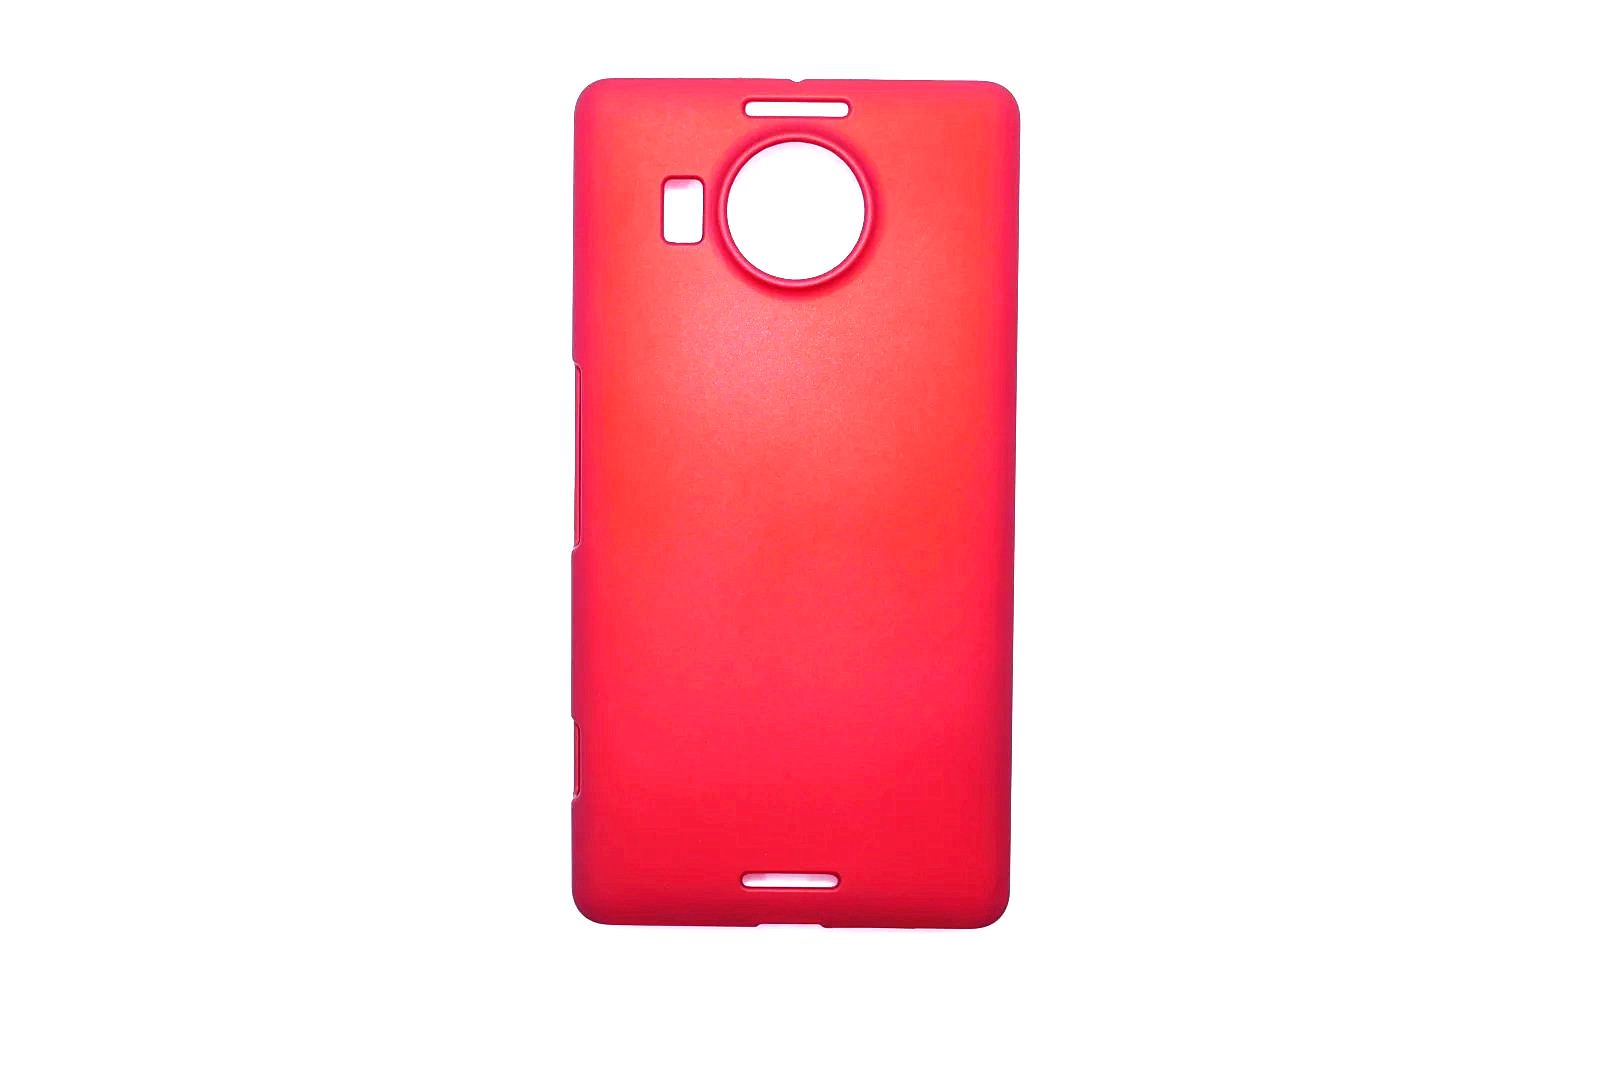 Phone case For Nokia <font><b>Lumia</b></font> 950 640 XL 1520 1320 1020 <font><b>930</b></font> 830 650 630 730 540 550 530 535 X2 520 625 925 Matte Hard <font><b>Back</b></font> <font><b>Cover</b></font> image